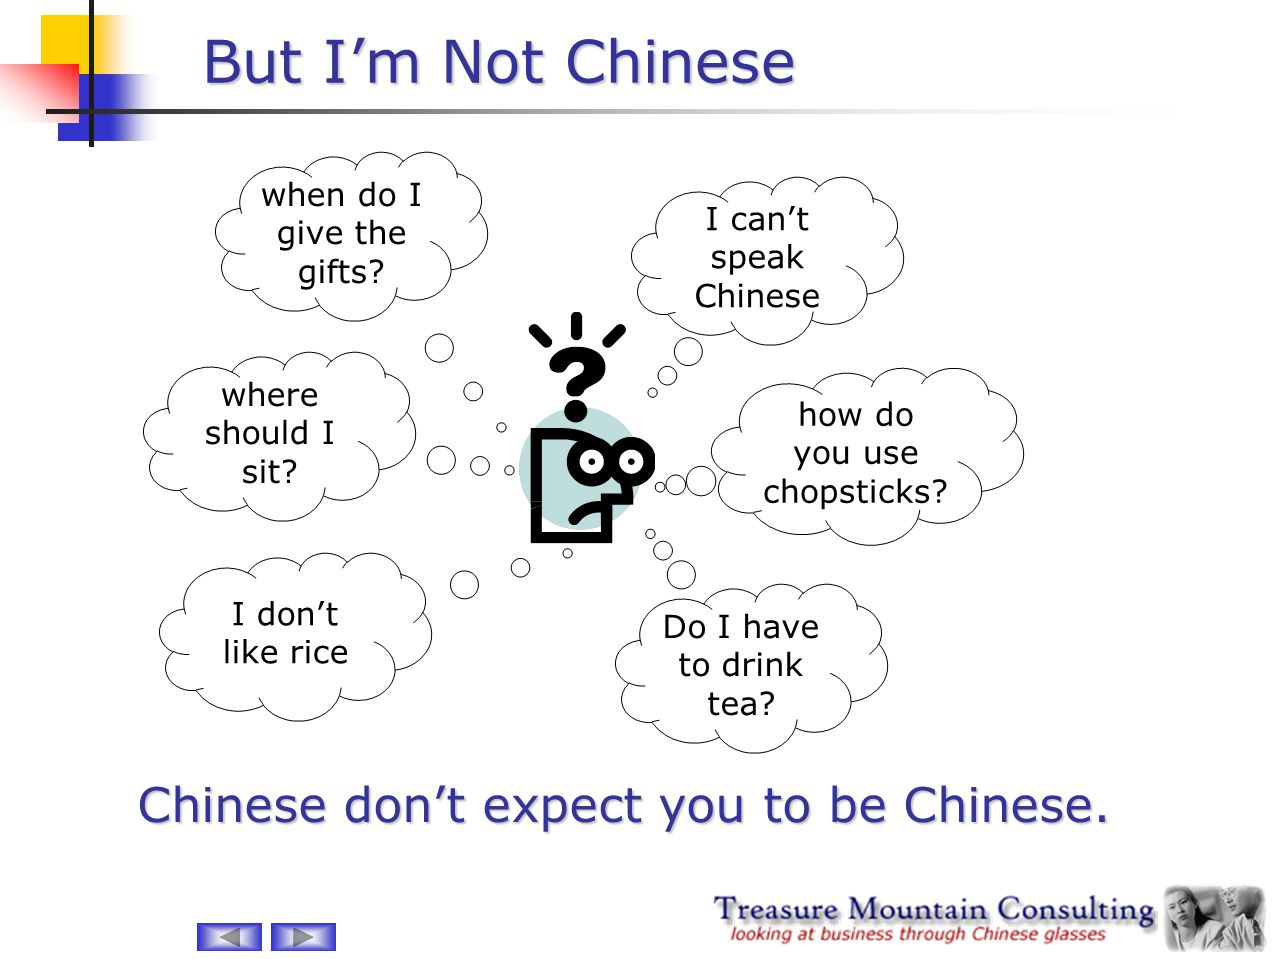 Chinese don't expect you to be Chinese.